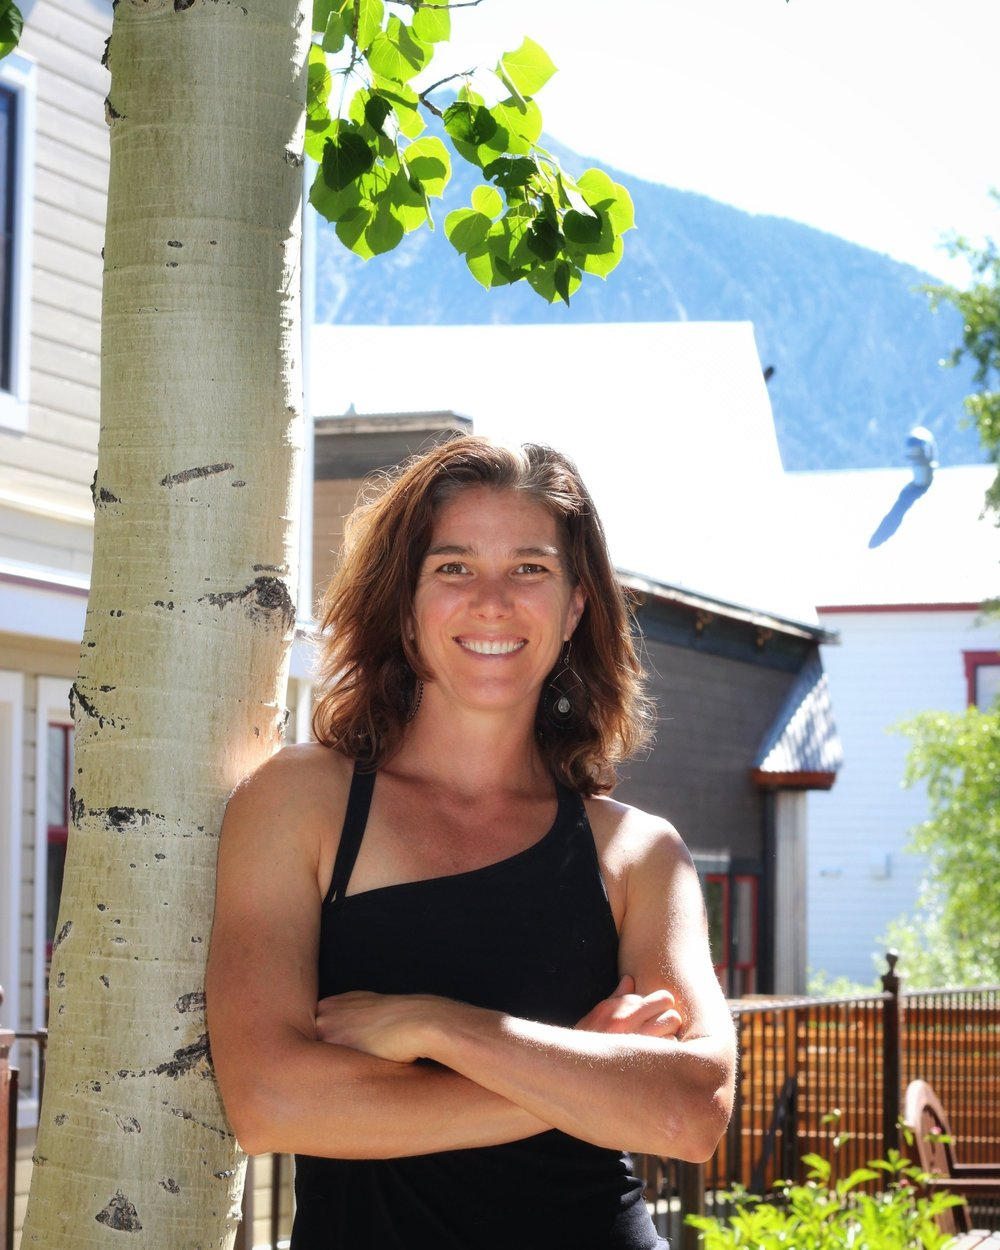 Helen Sage Creek Side Spa Crested Butte massage therapist